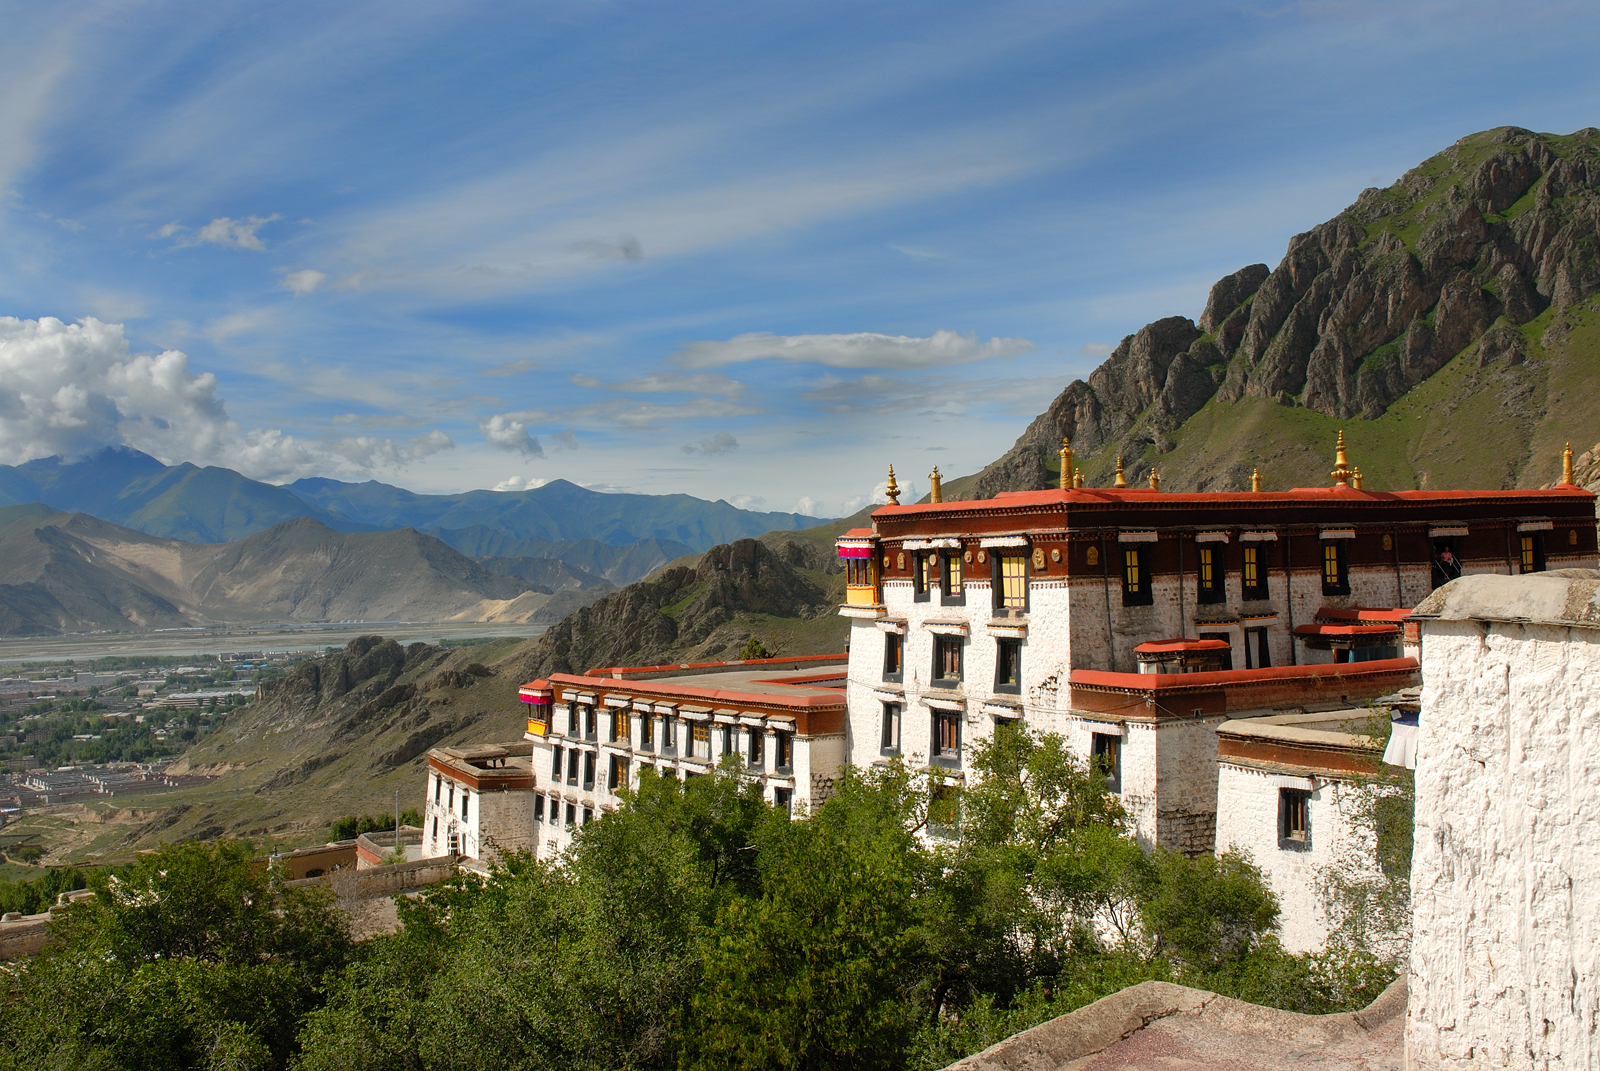 Lhasa China  City new picture : ... Lhasa ལྷ་ས, 拉萨 . A voyage to Lhasa, Tibet, China, Asia